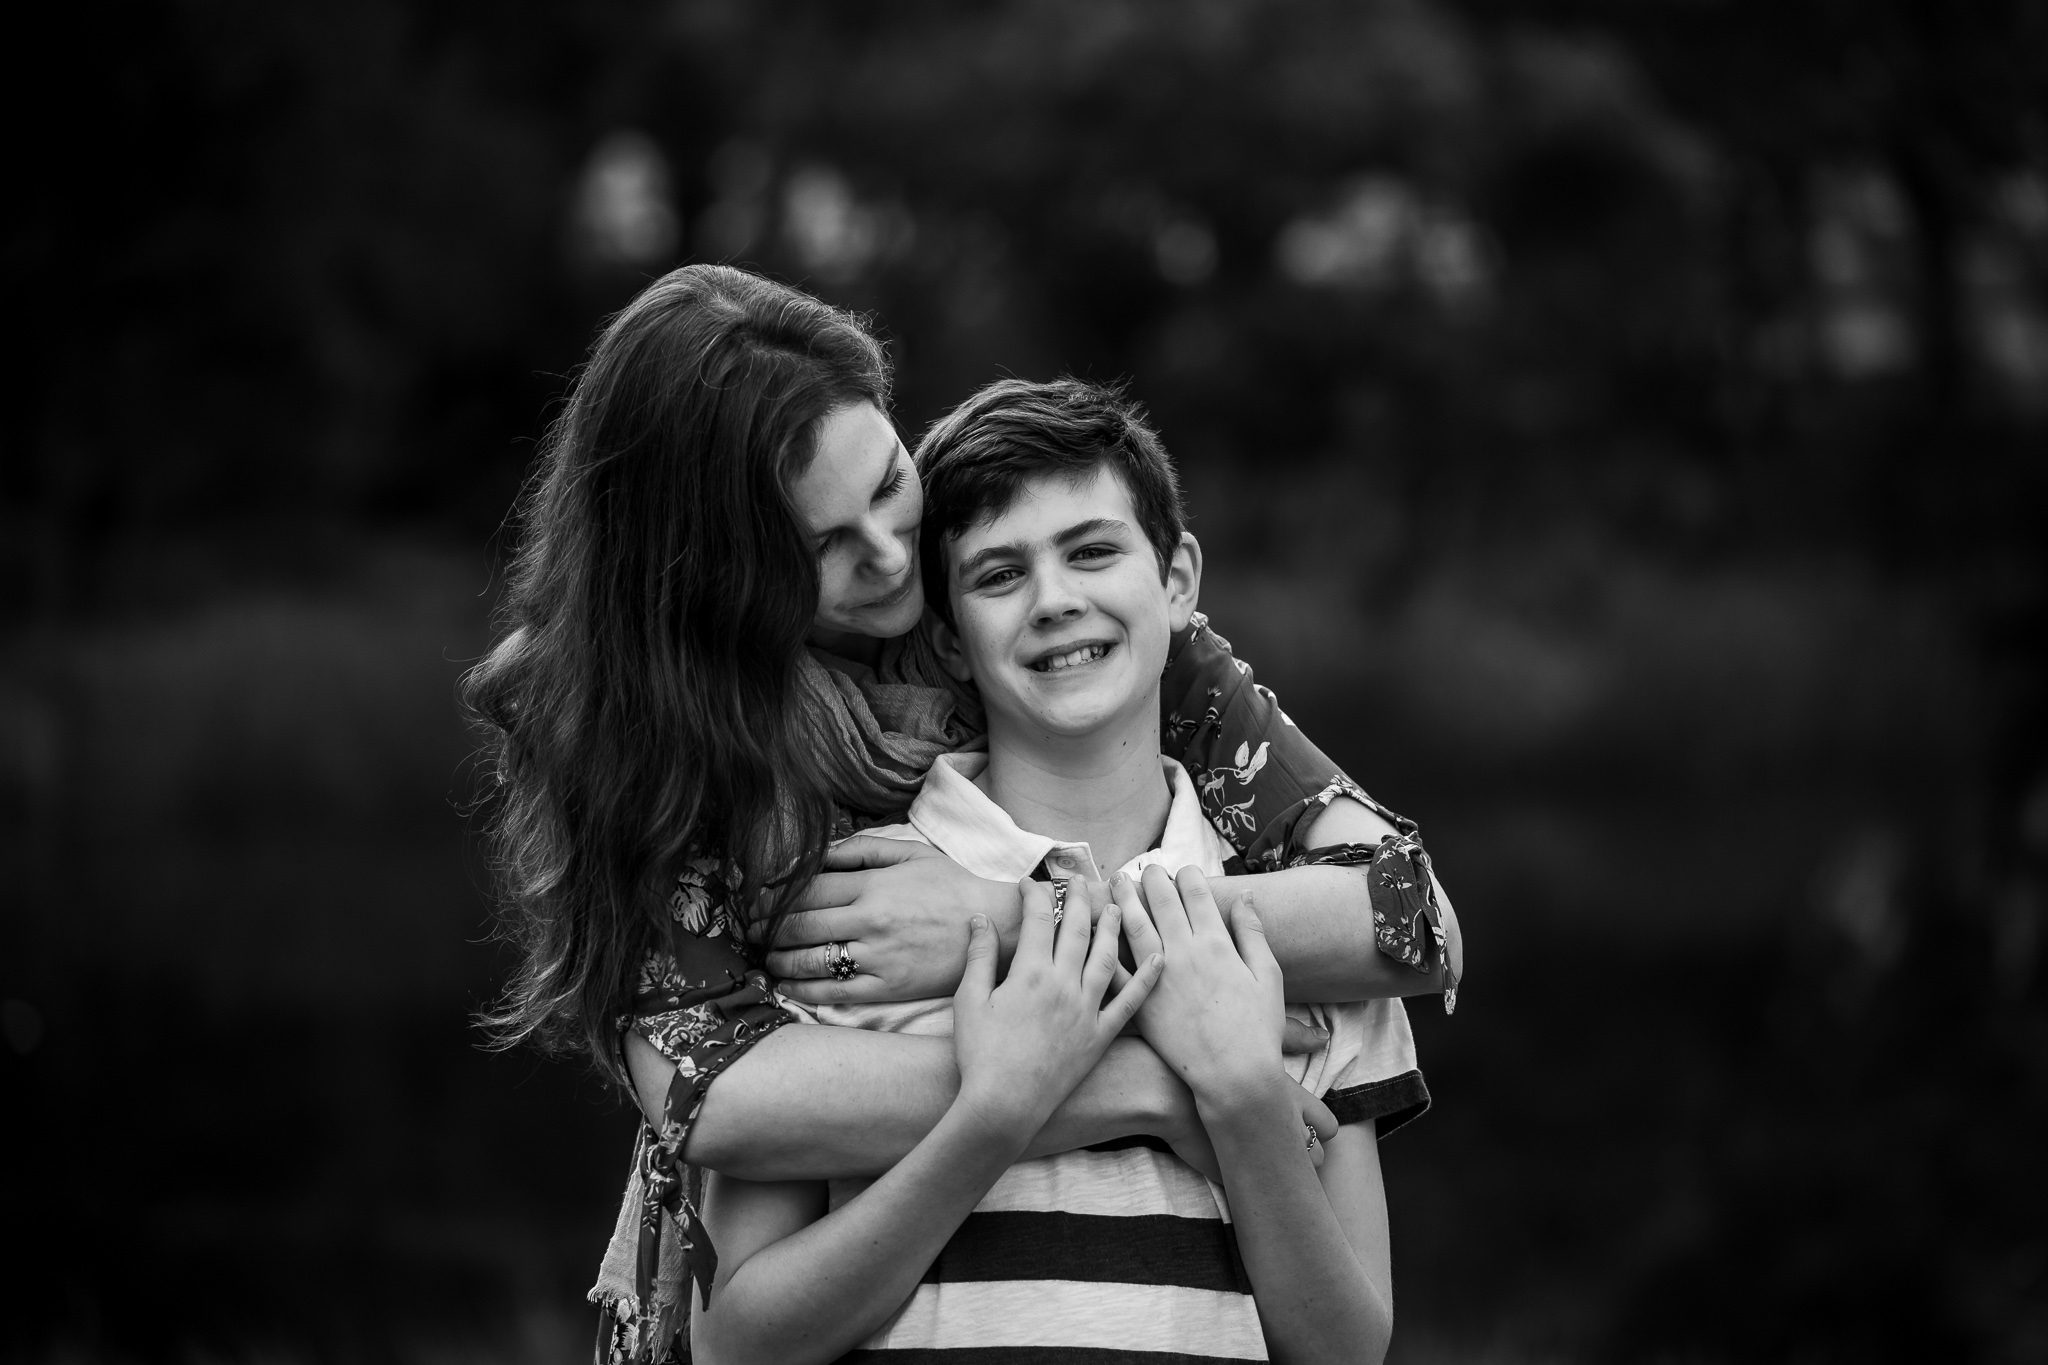 Jack-and-Purdy-Perth-Family-Photographer-22.jpg